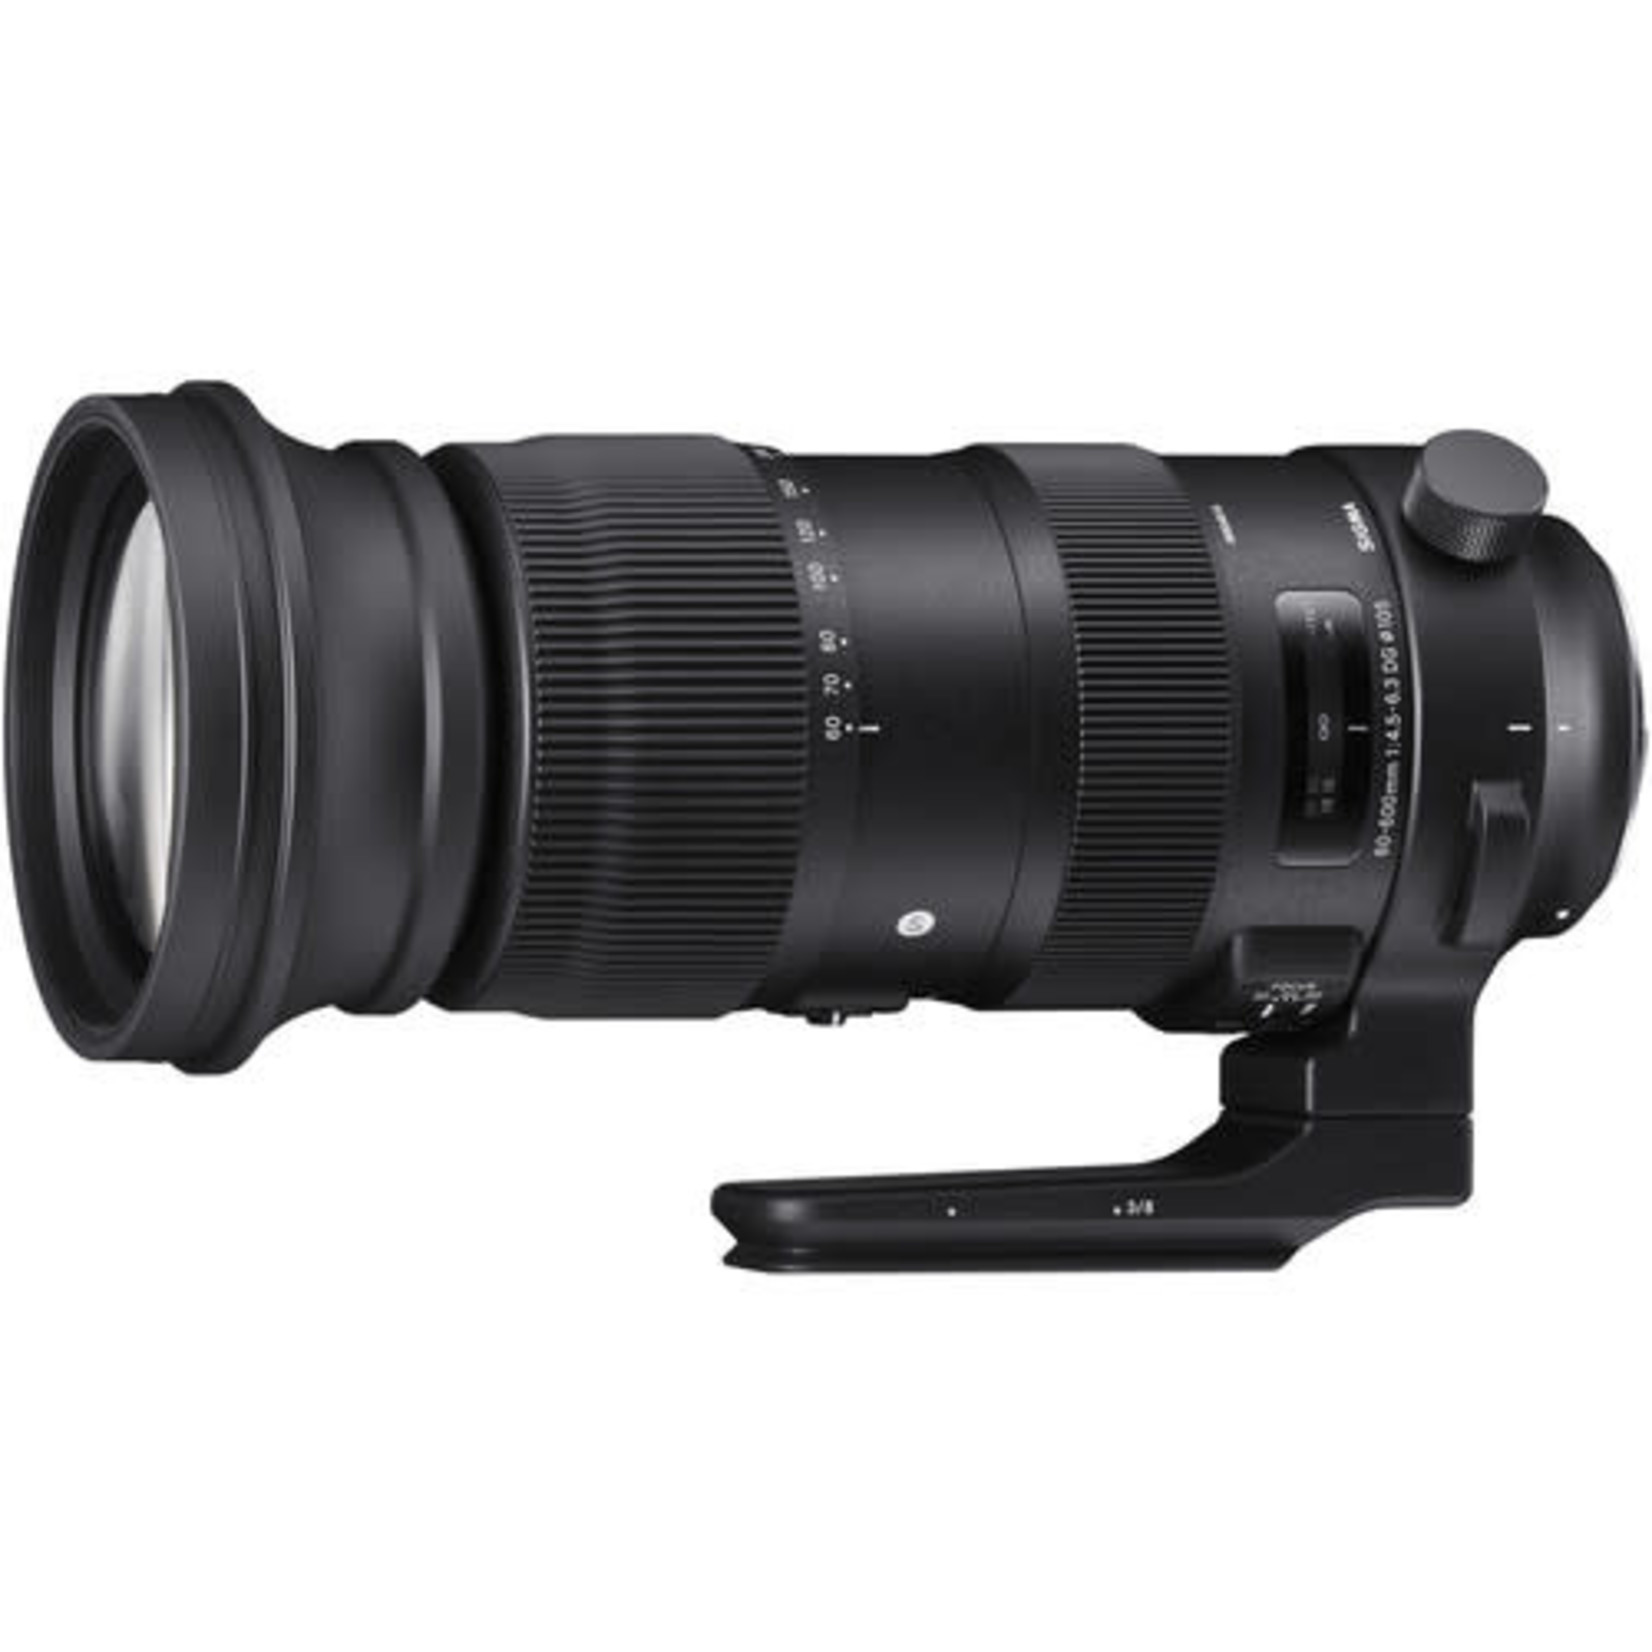 Sigma Sigma 60-600mm f/4.5-6.3 DG OS HSM Sports Lens for Canon EF